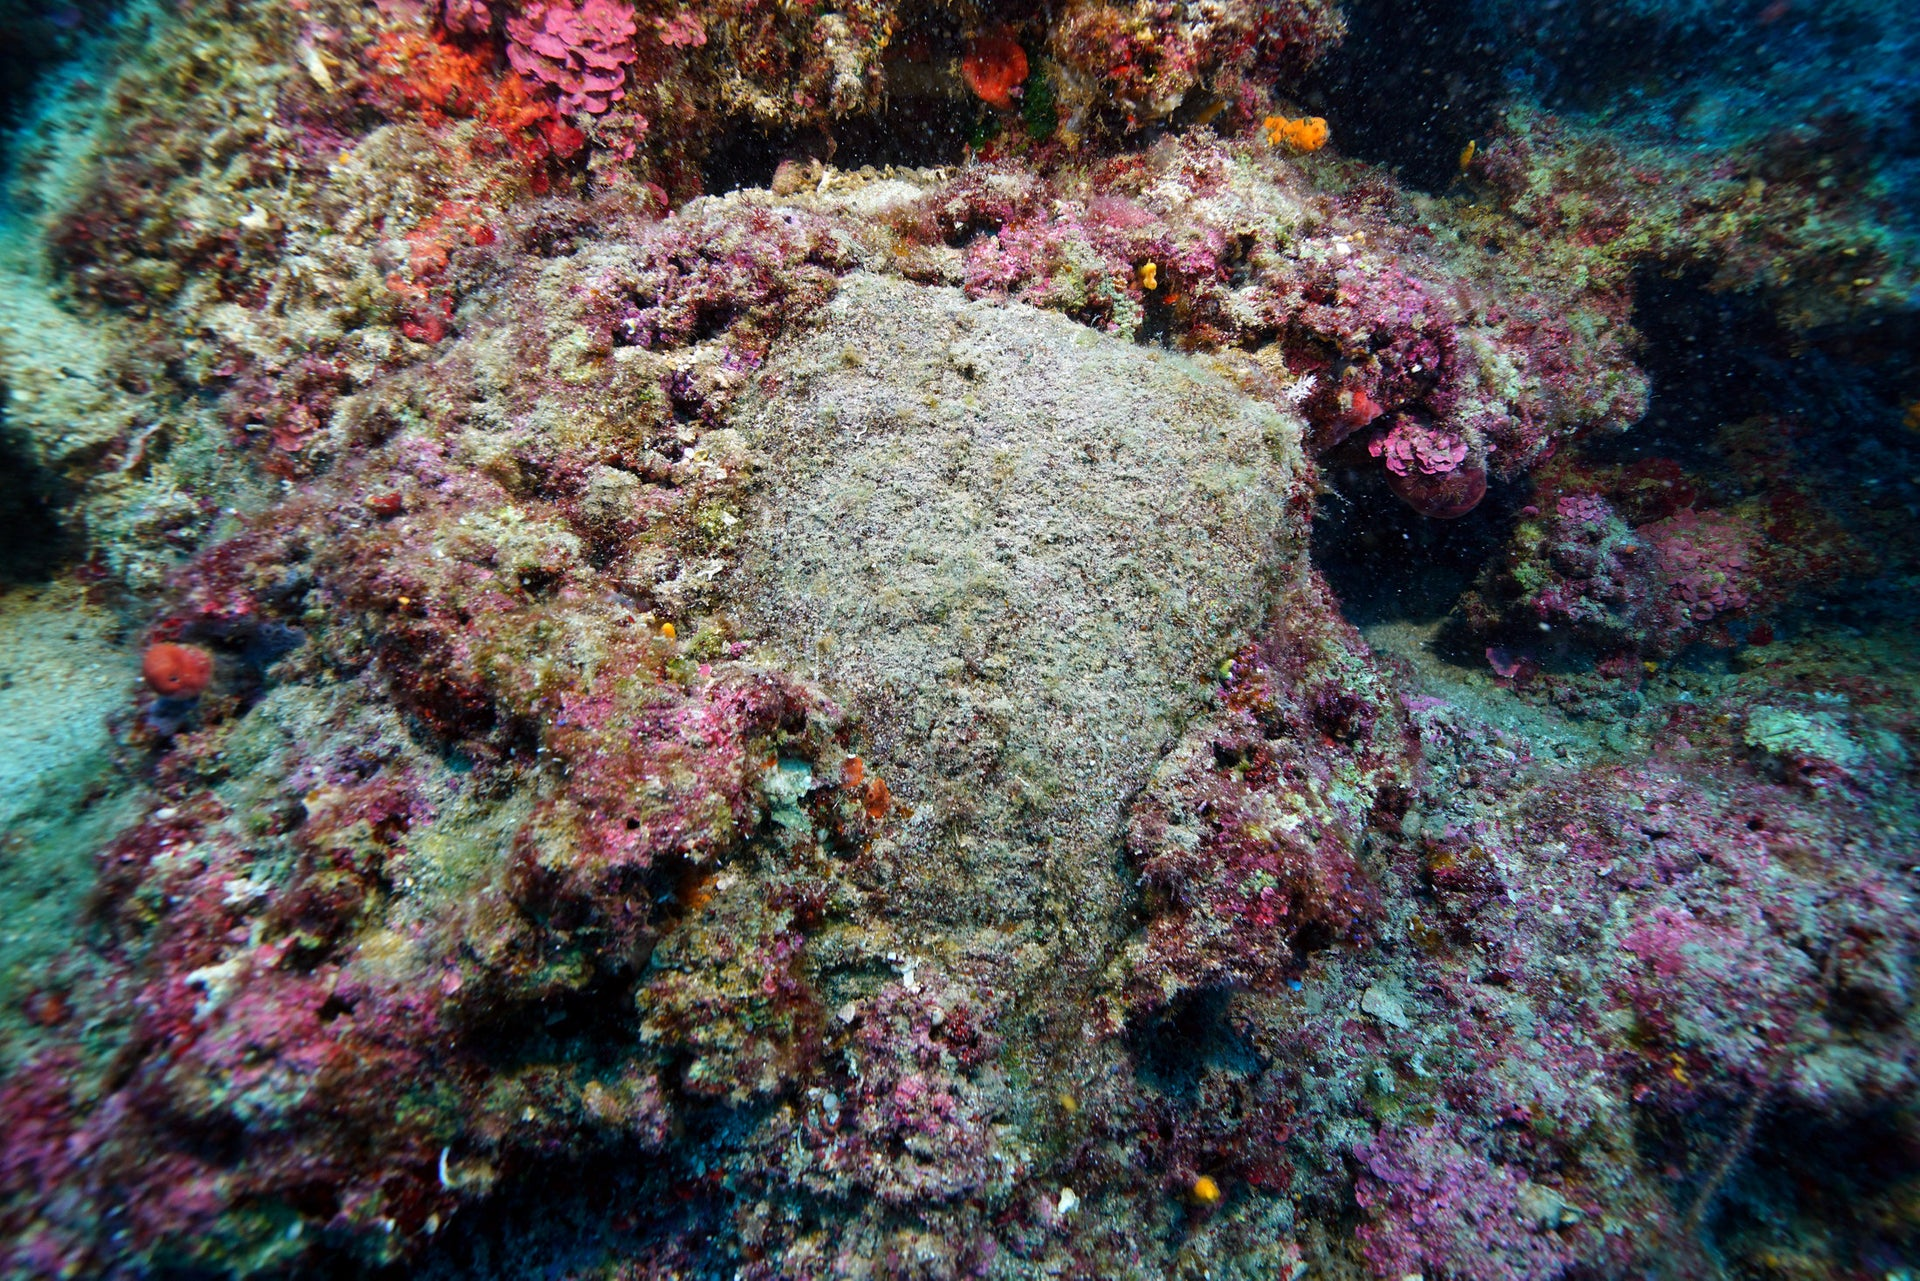 Encrusted pillow-shaped ingots on the seabed off Antalya